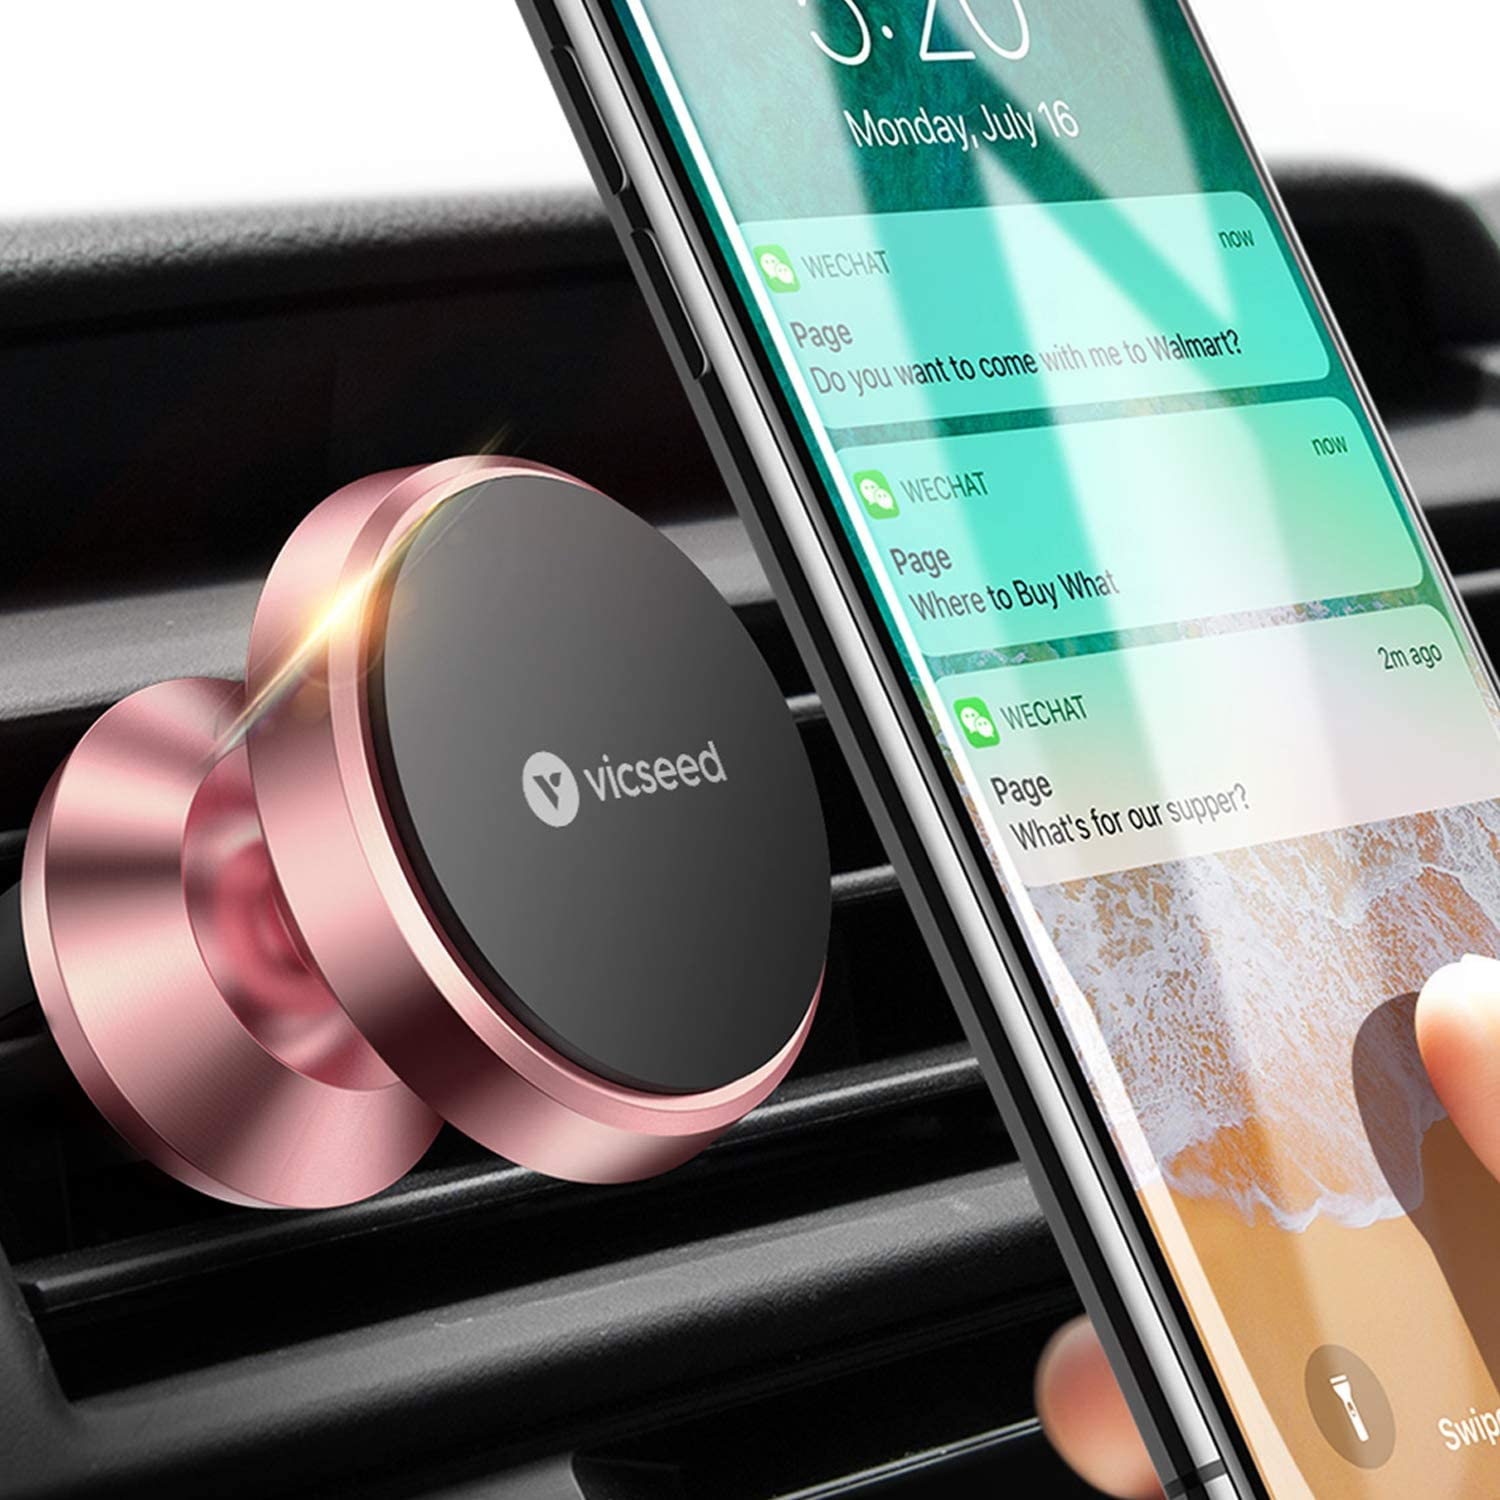 VICSEED Car Phone Mount Magnetic Phone Car Mount Magnet Air Vent Mount Phone Holder for Car Compatible with iPhone 11 Pro XS Max XR X 8 7 6 Plus Samsung Galaxy S20 Note20 Note10 S10 S10+ All Phone